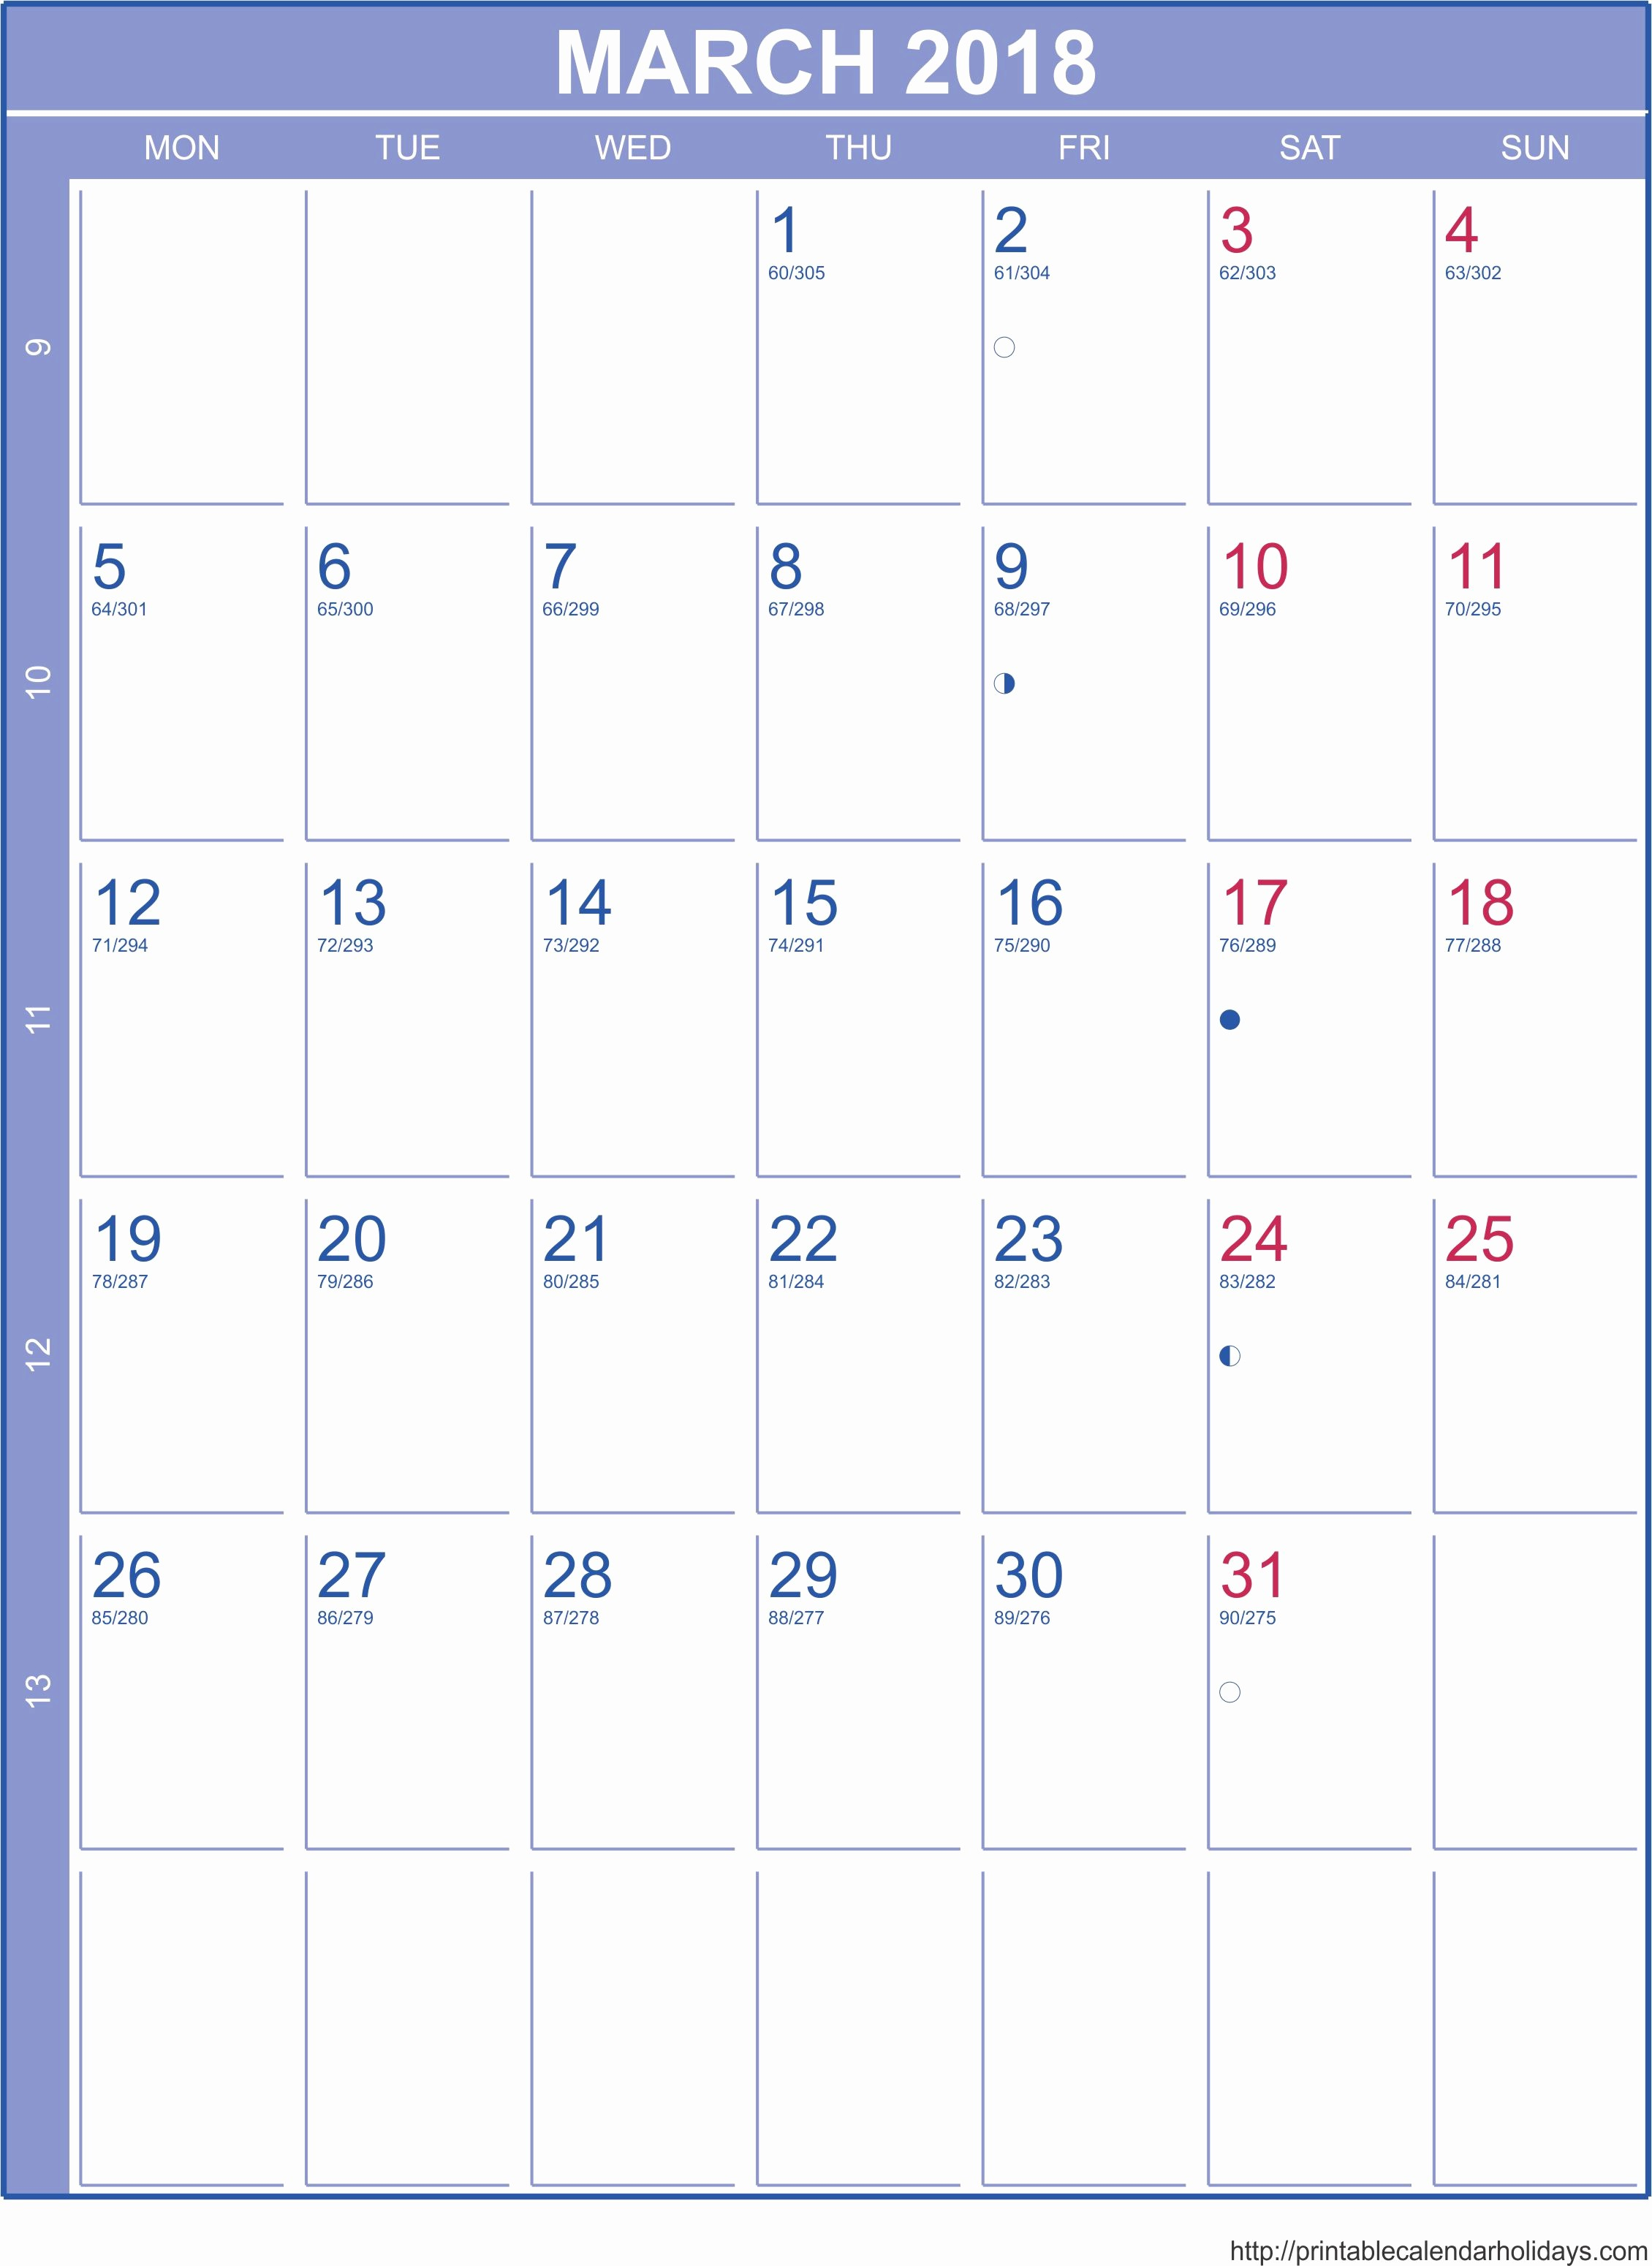 Month by Month Calendar Template Unique 2018 Monthly Calendar Template